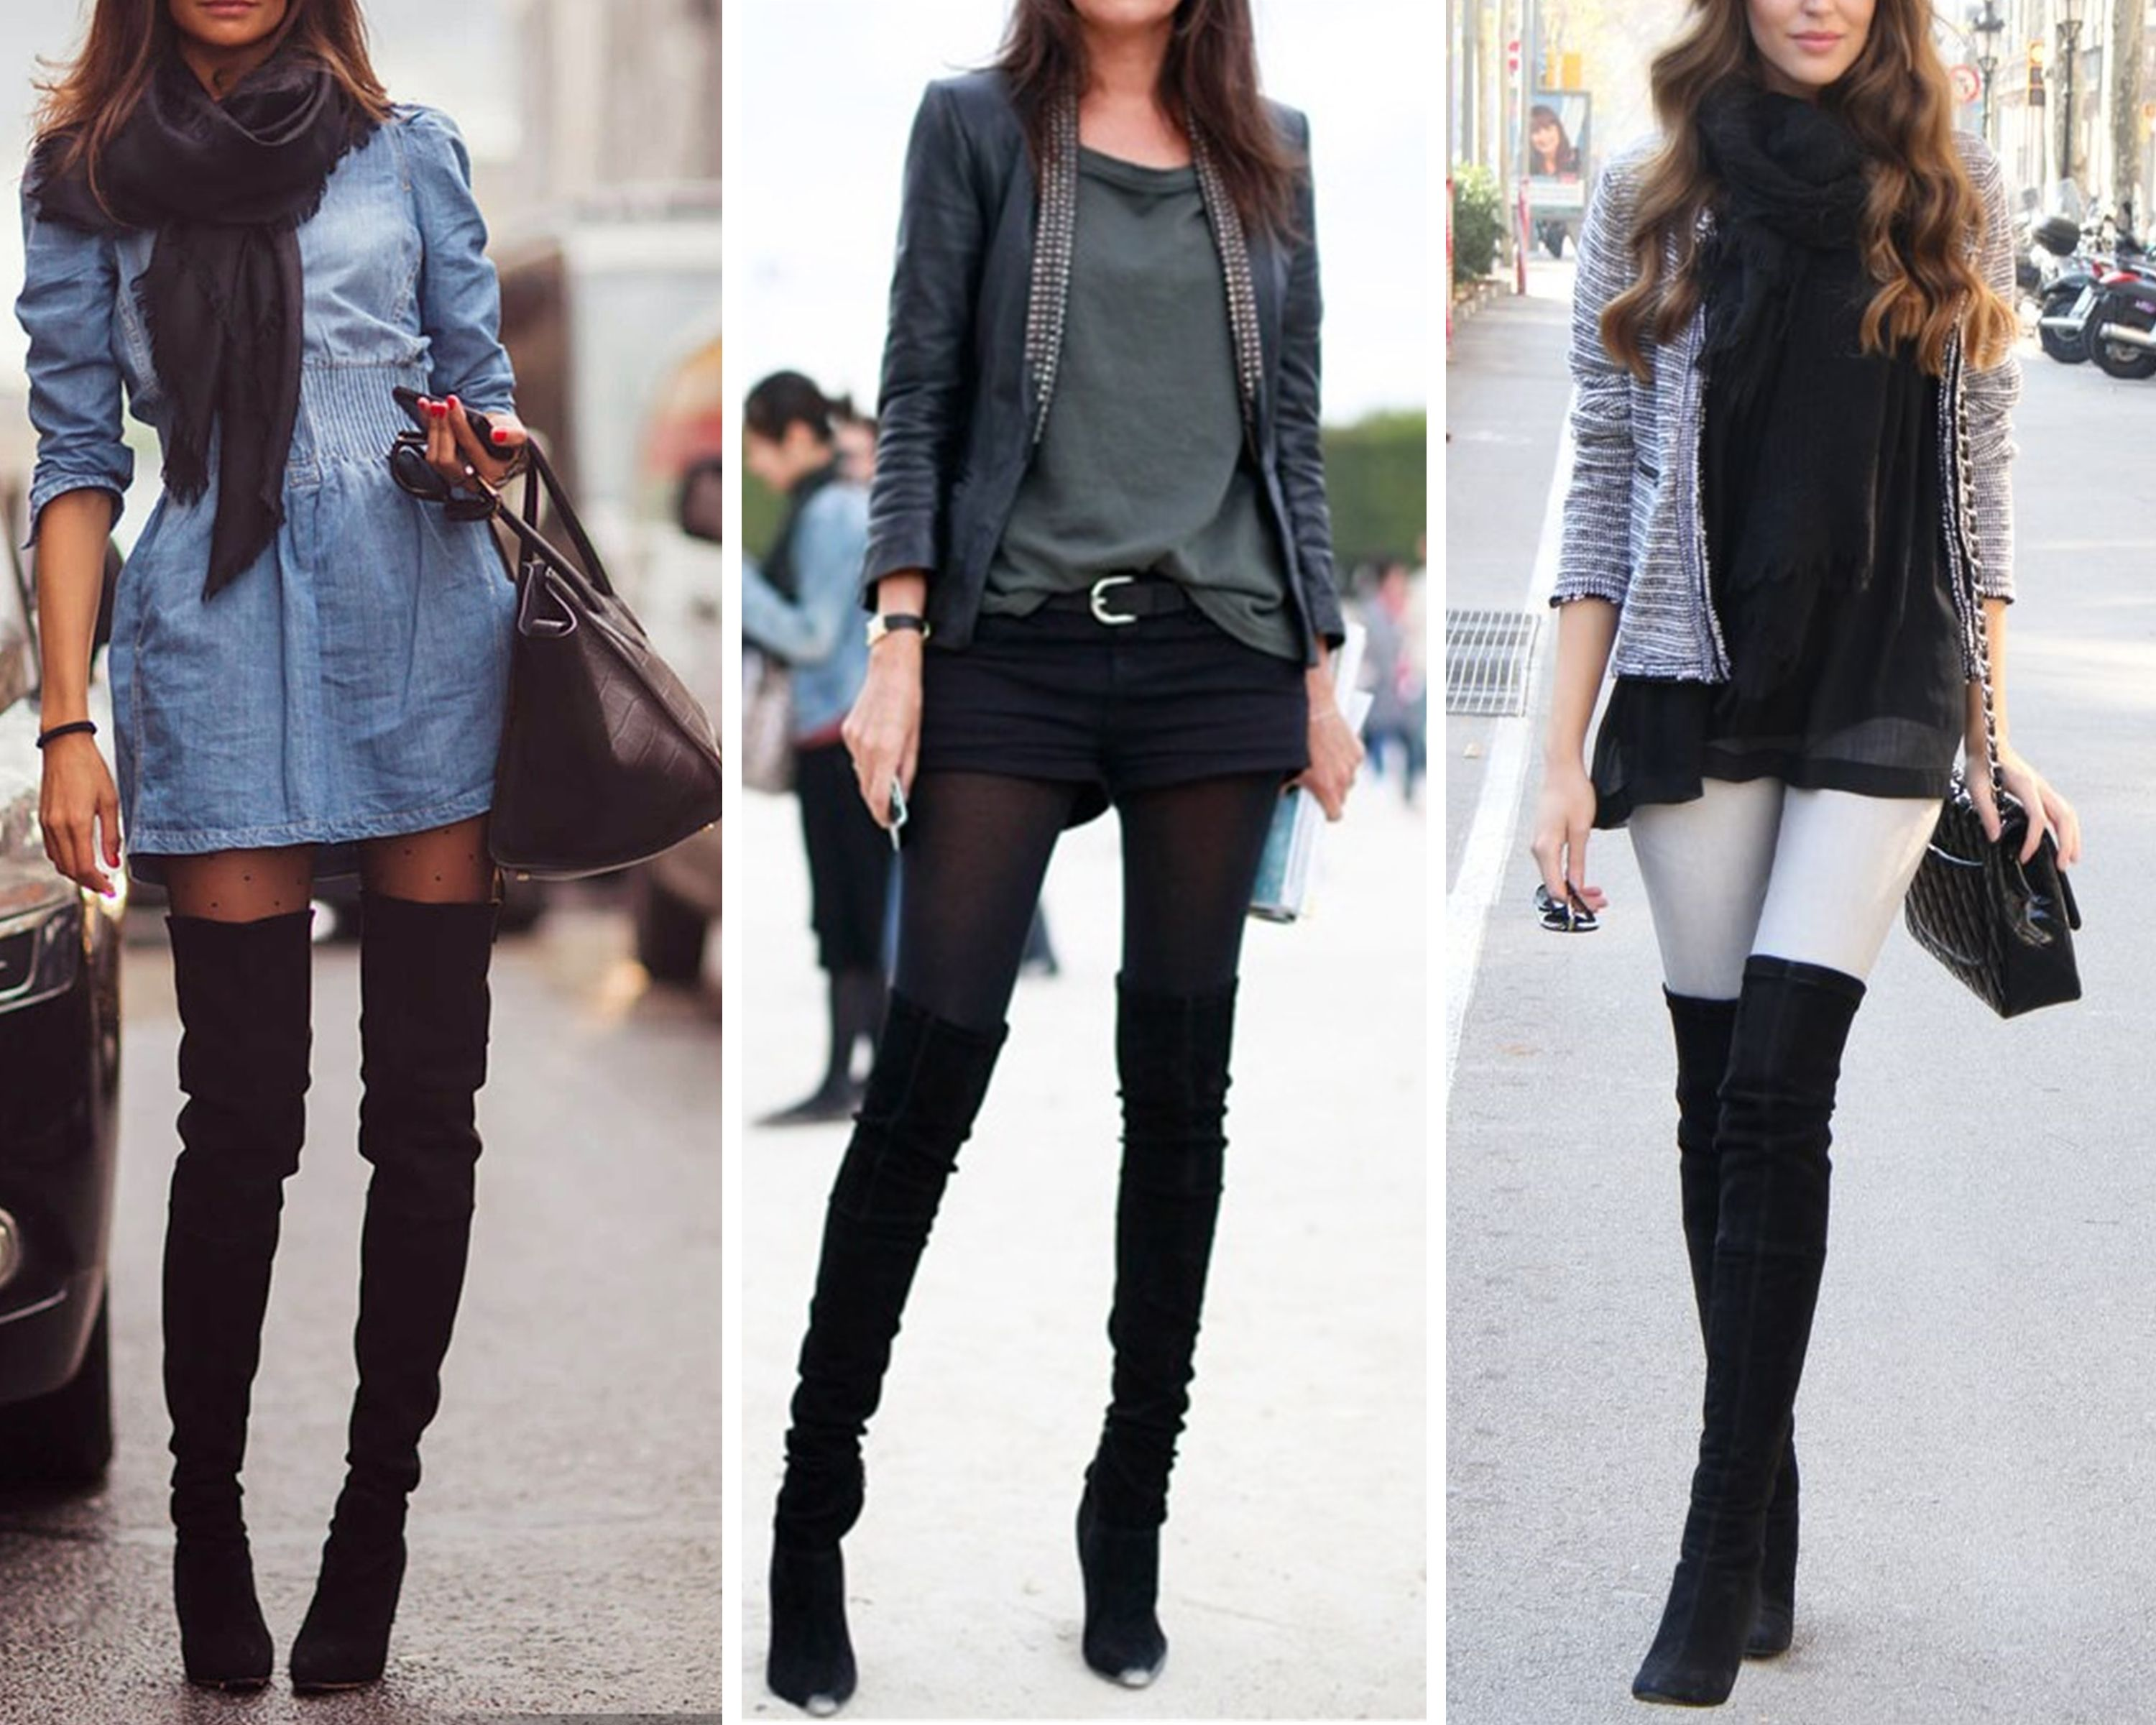 Ways to wear heeled 'over-the-knee' boots | Fashion | Pinterest ...